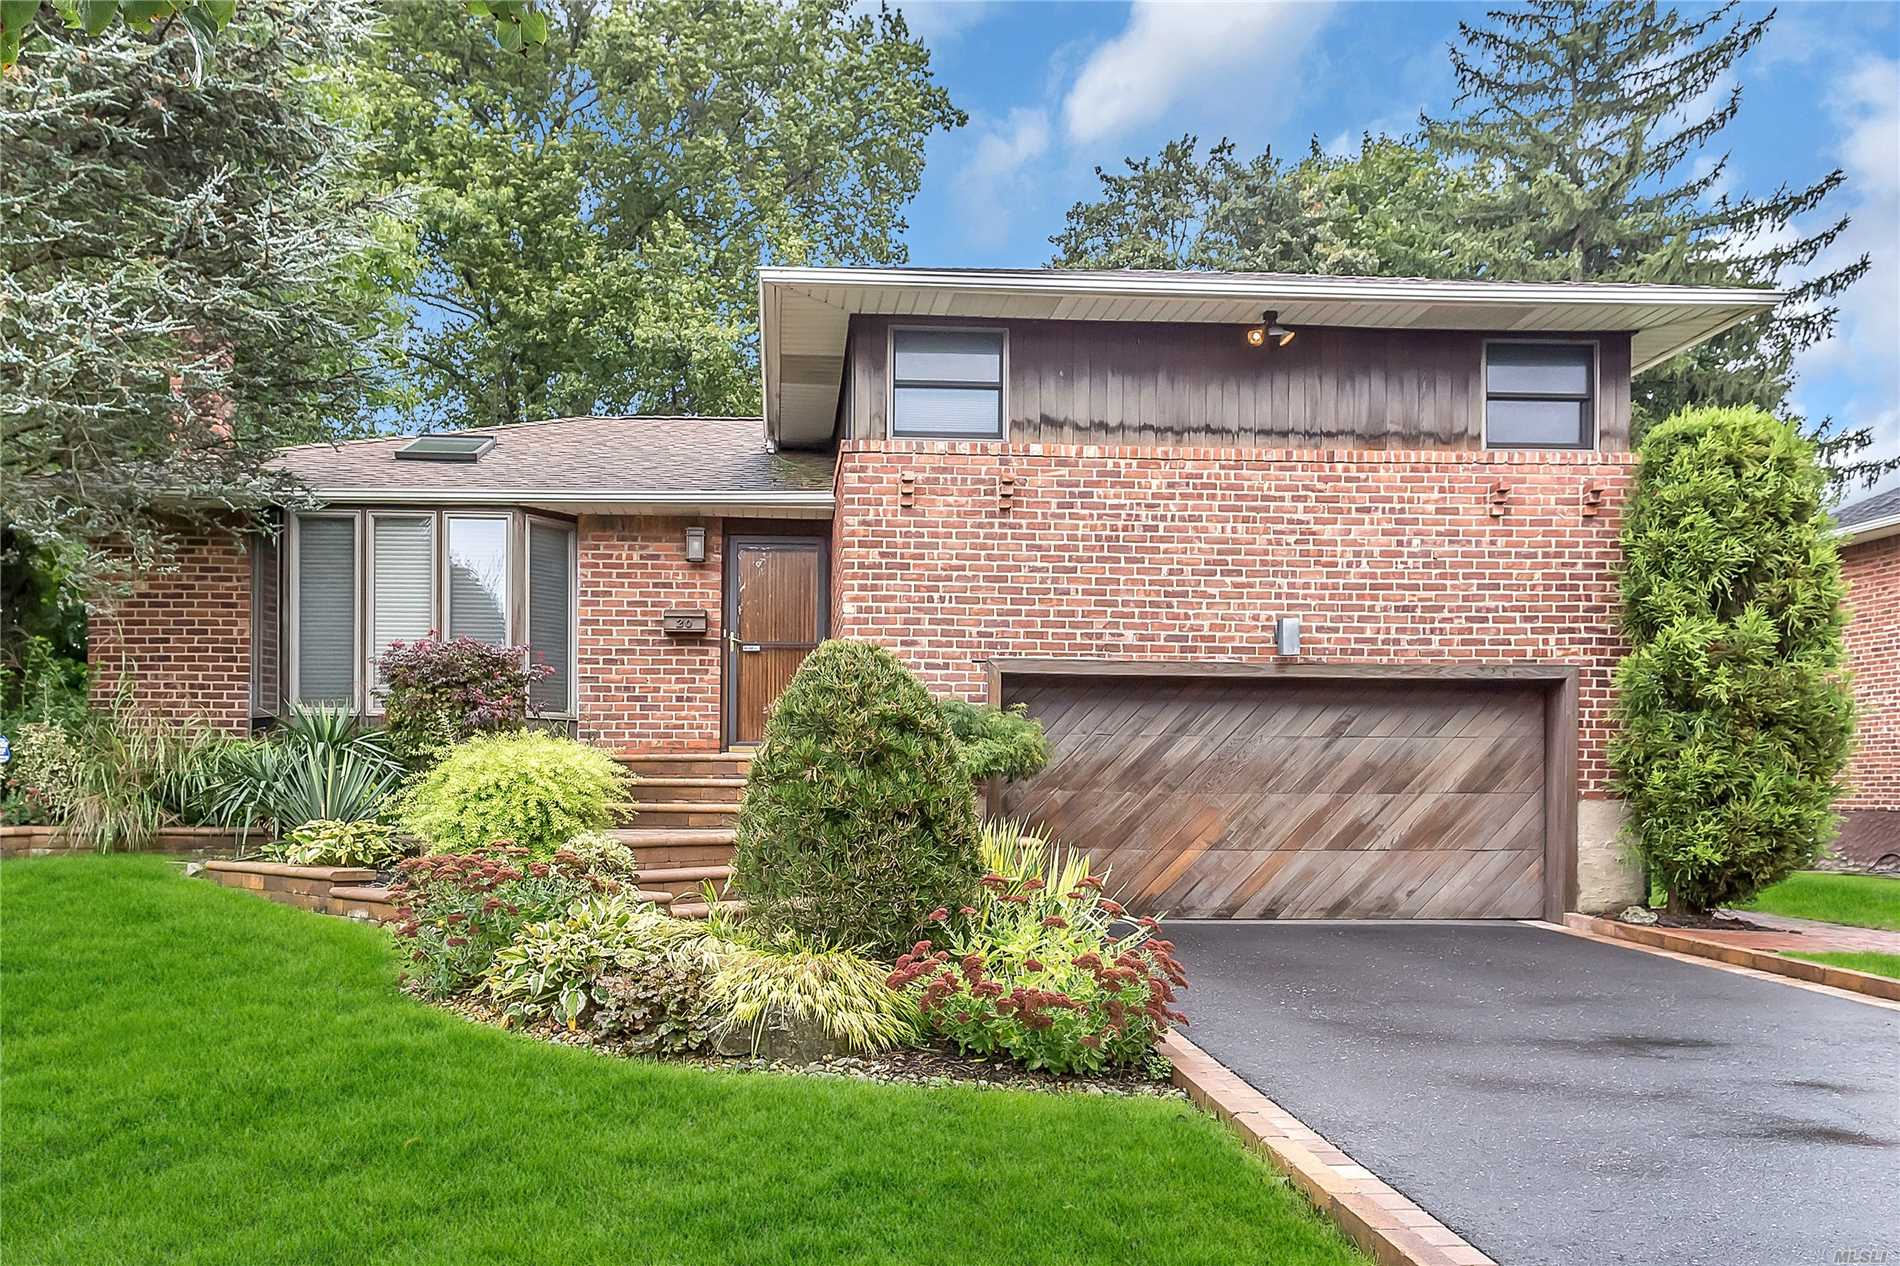 20 Maplewood Dr - Plainview, New York